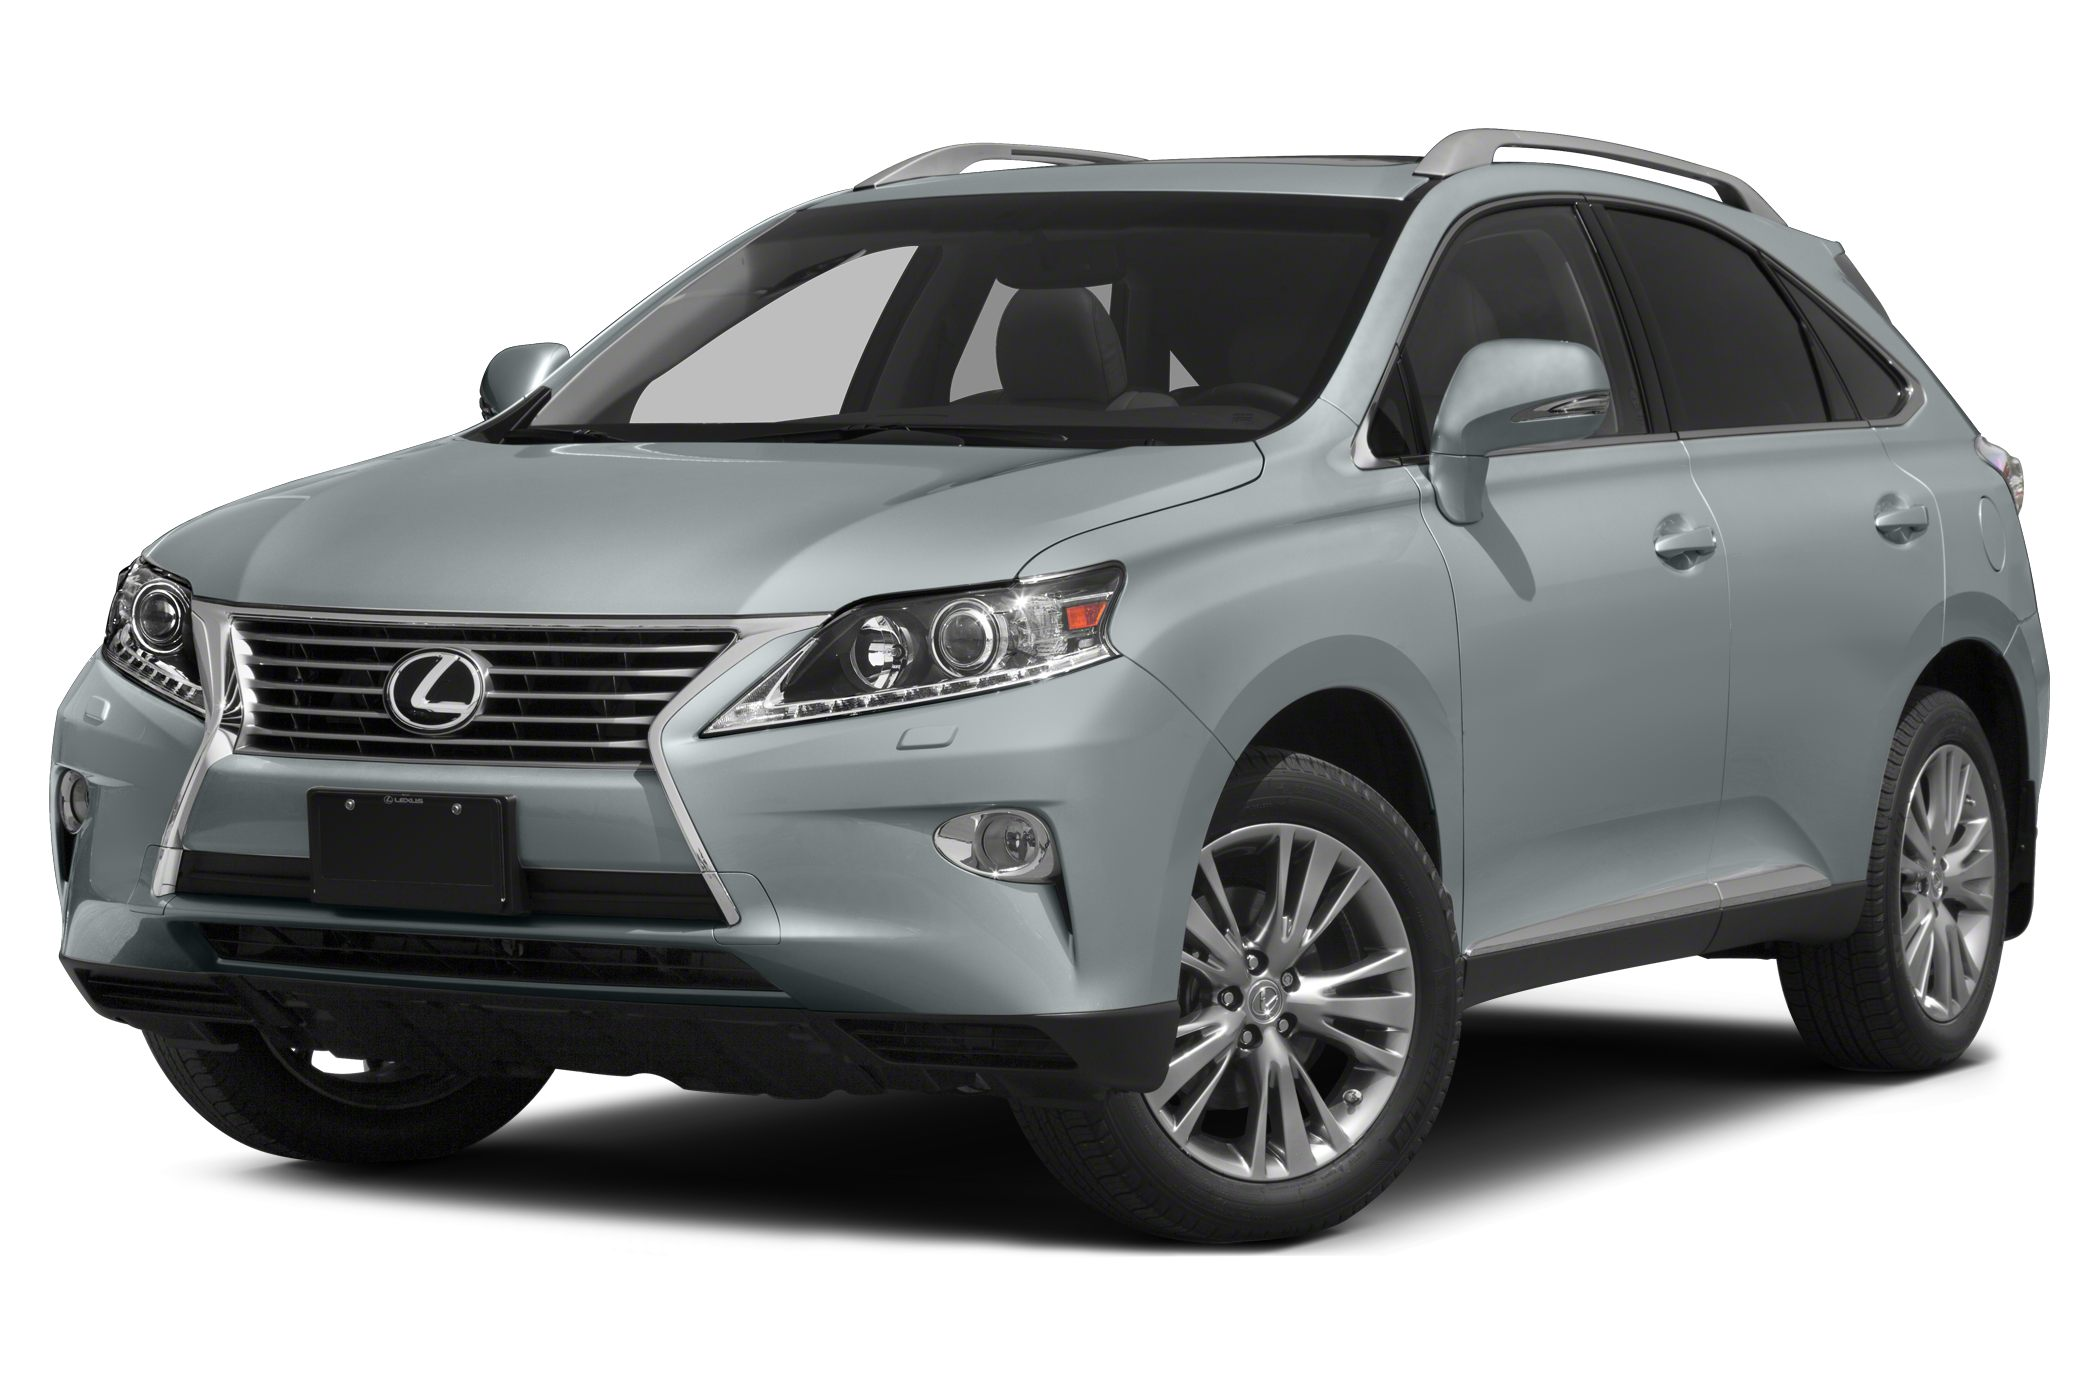 2014 Lexus RX 350 Base MULLINAX CERTIFIED PRE-OWNED means you get the reassurance of a 110-point i